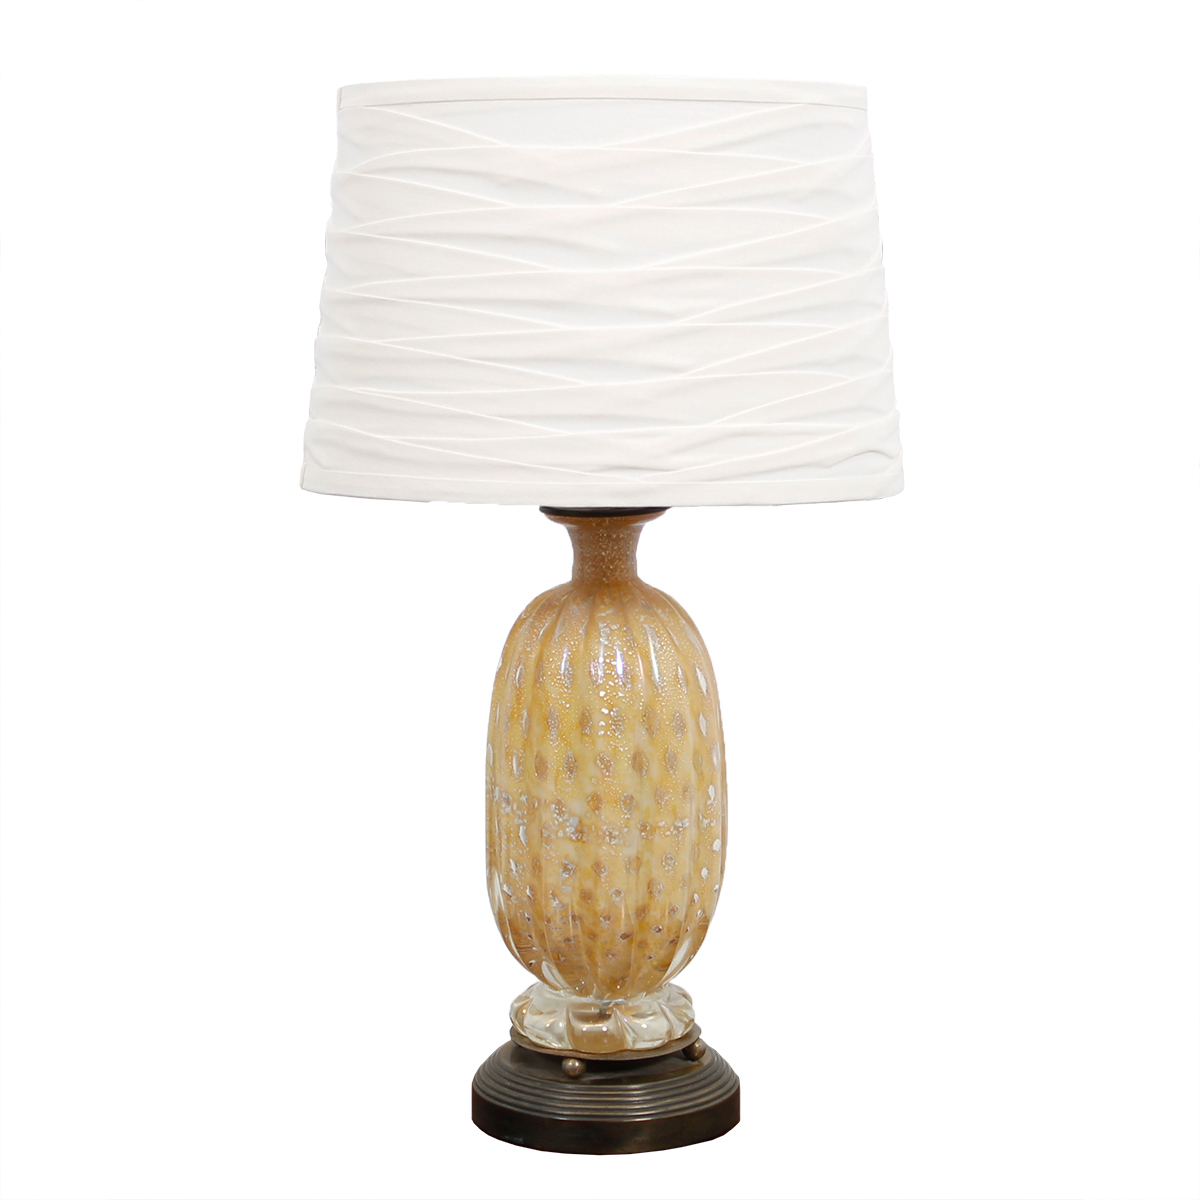 Barovier Toso Murano Glass Table Lamp